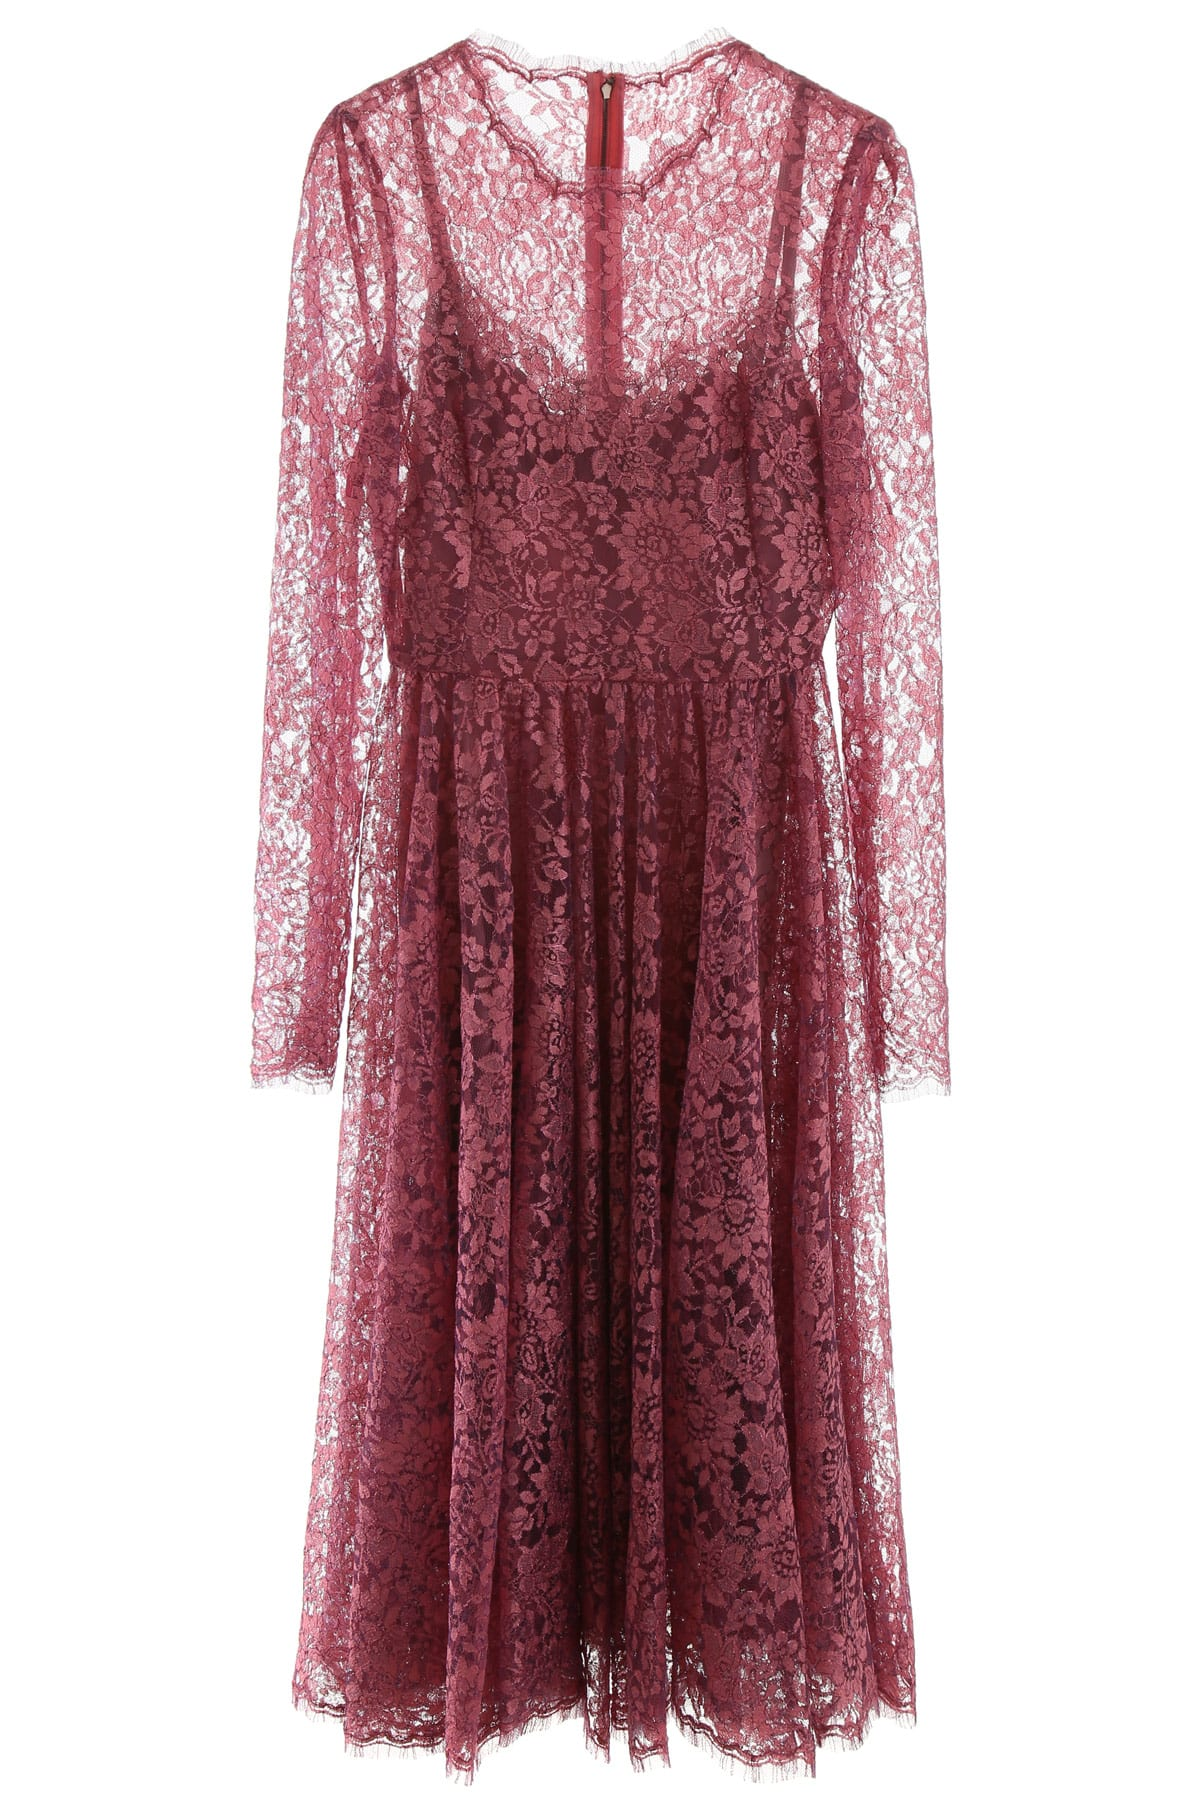 Buy Dolce & Gabbana Lame Lace Midi Dress online, shop Dolce & Gabbana with free shipping